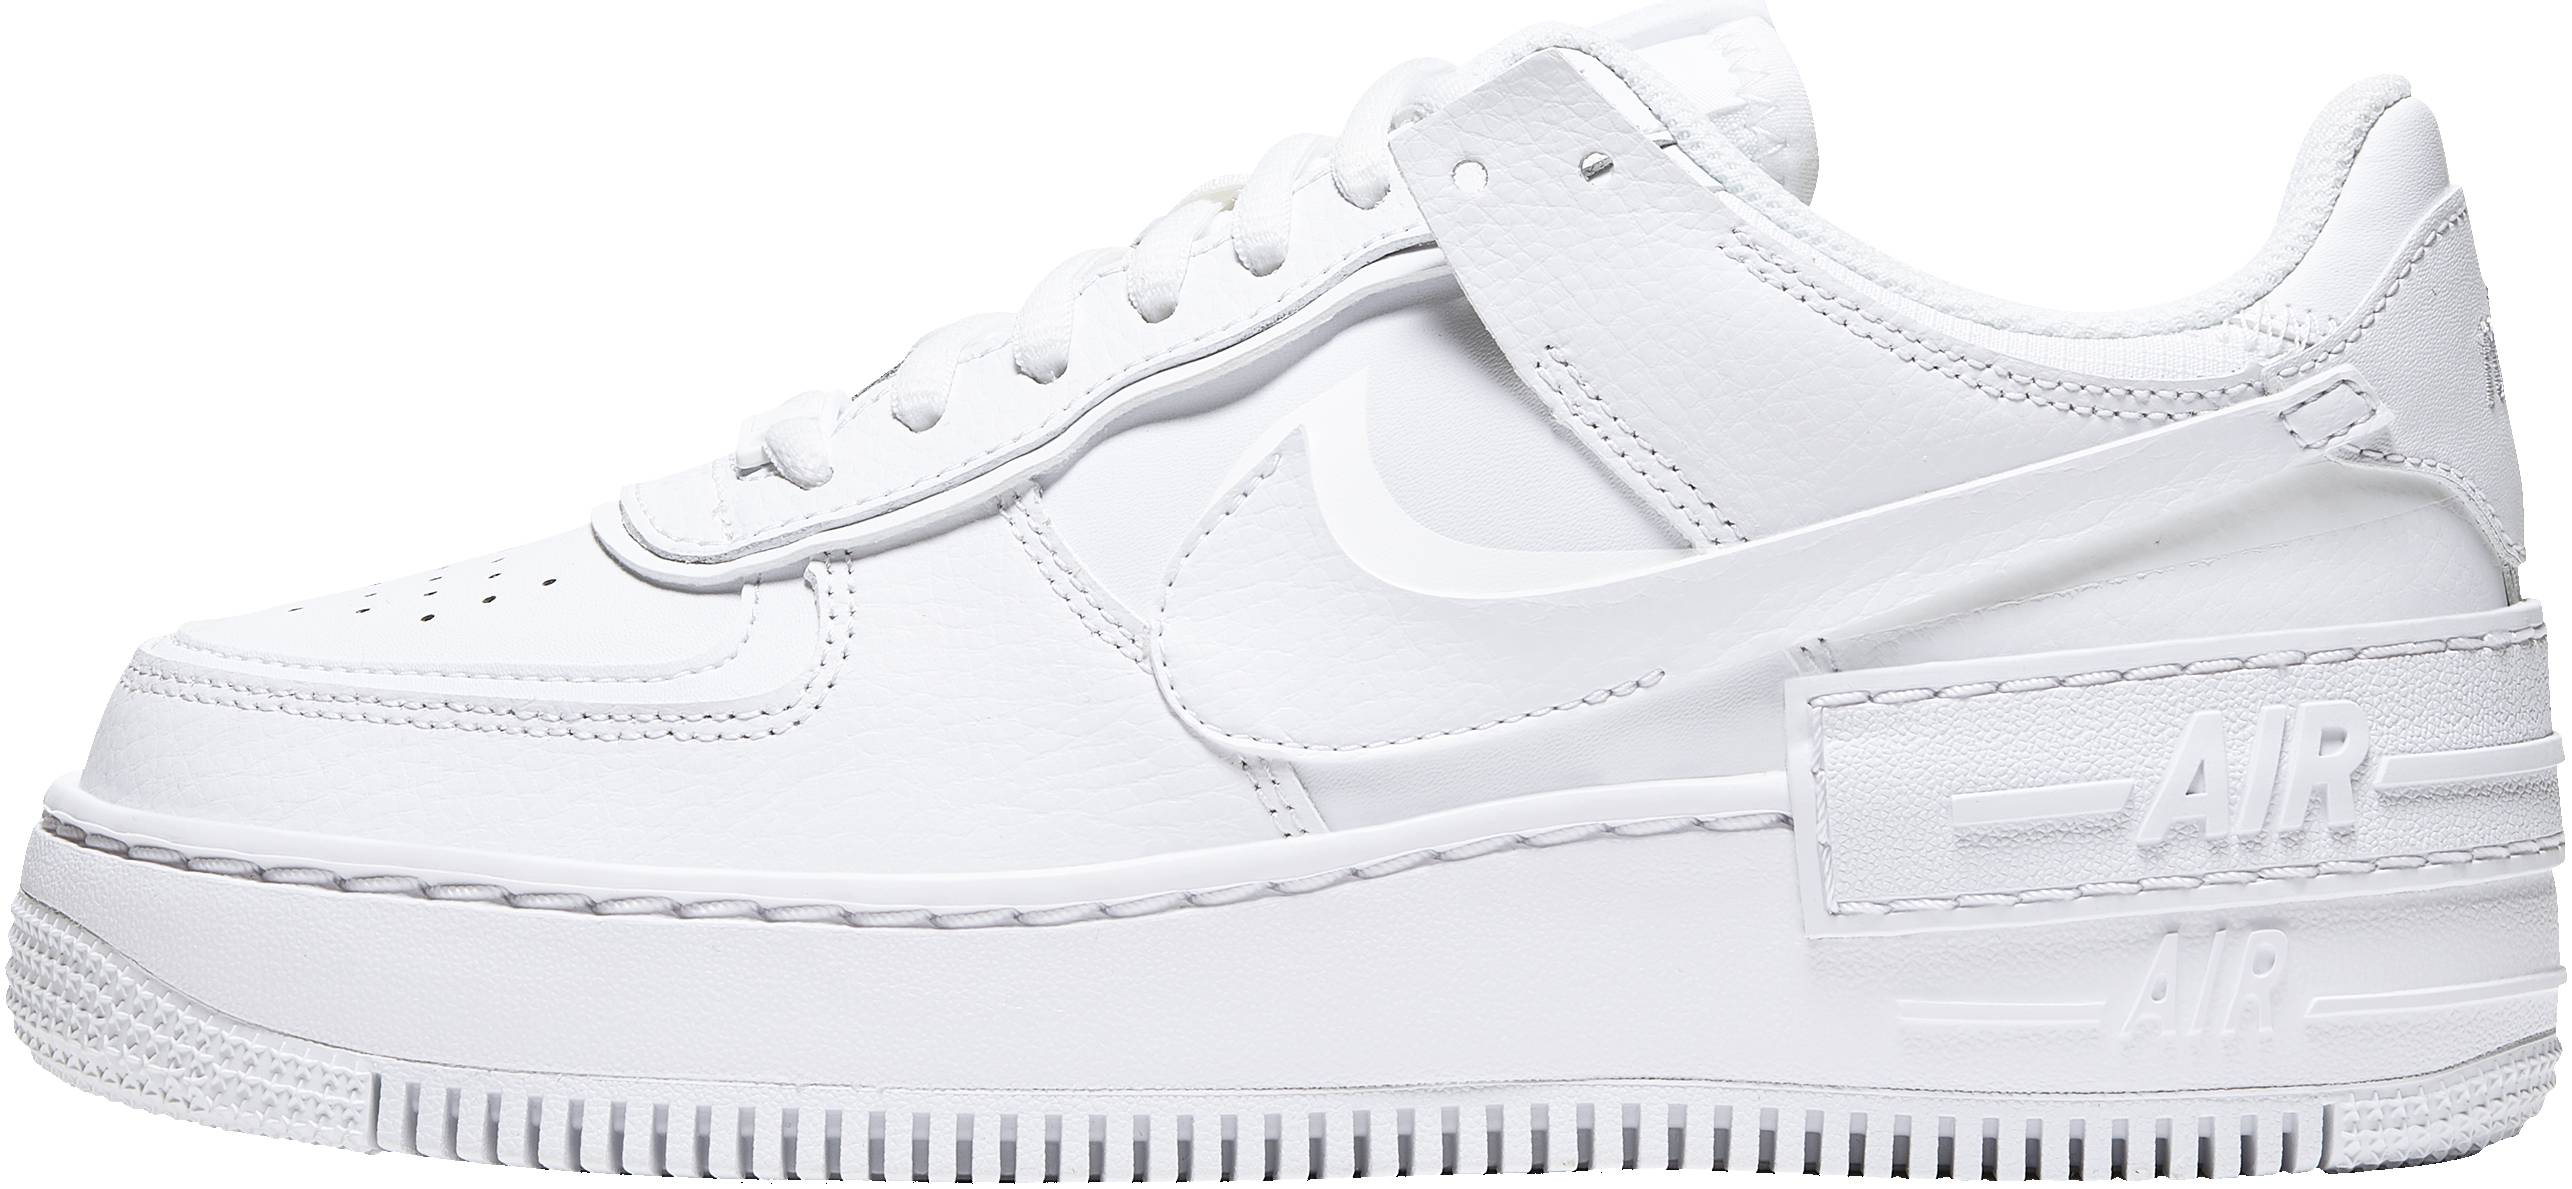 110 Review Of Nike Air Force 1 Shadow Runrepeat This nike air force 1 shadow comes with an iridescent pixelated swoosh. nike air force 1 shadow